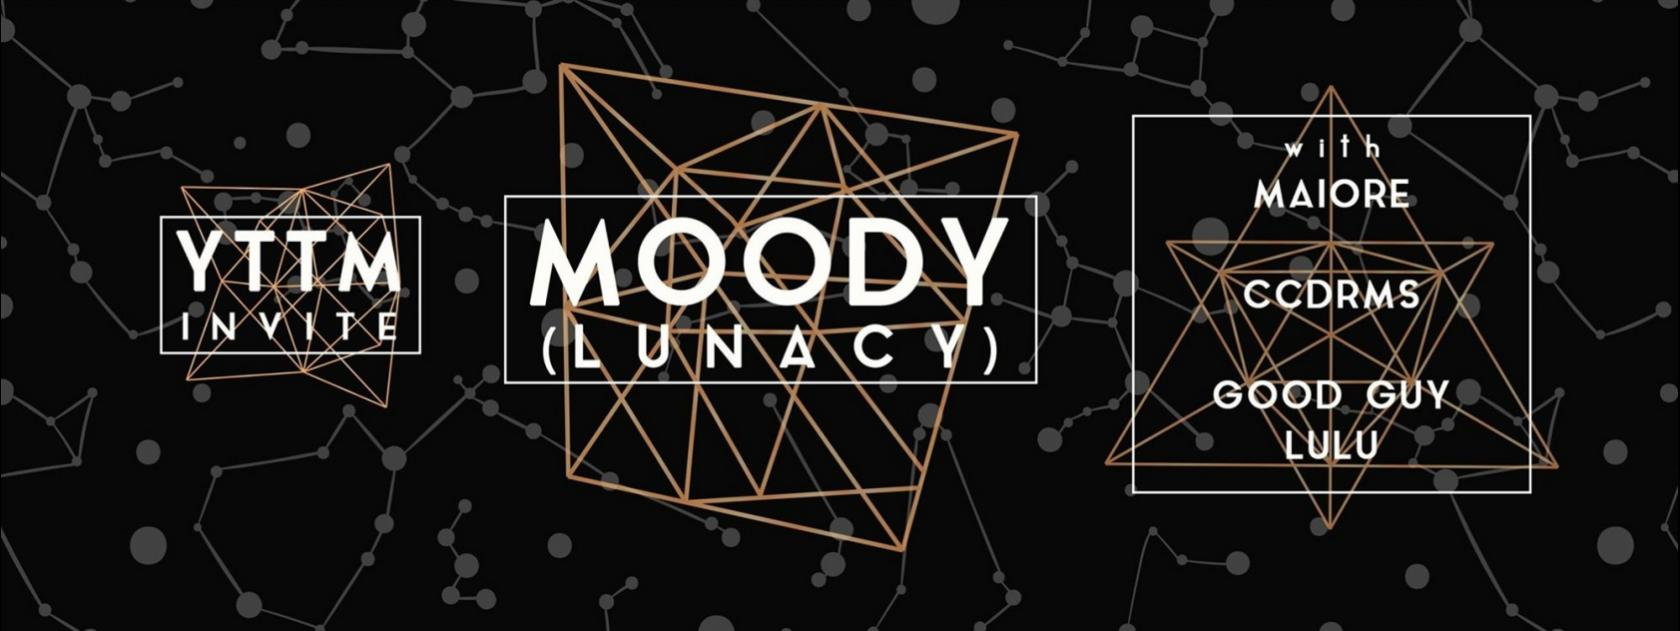 Techno : You took too much invite Moody (Lunacy) Cholet